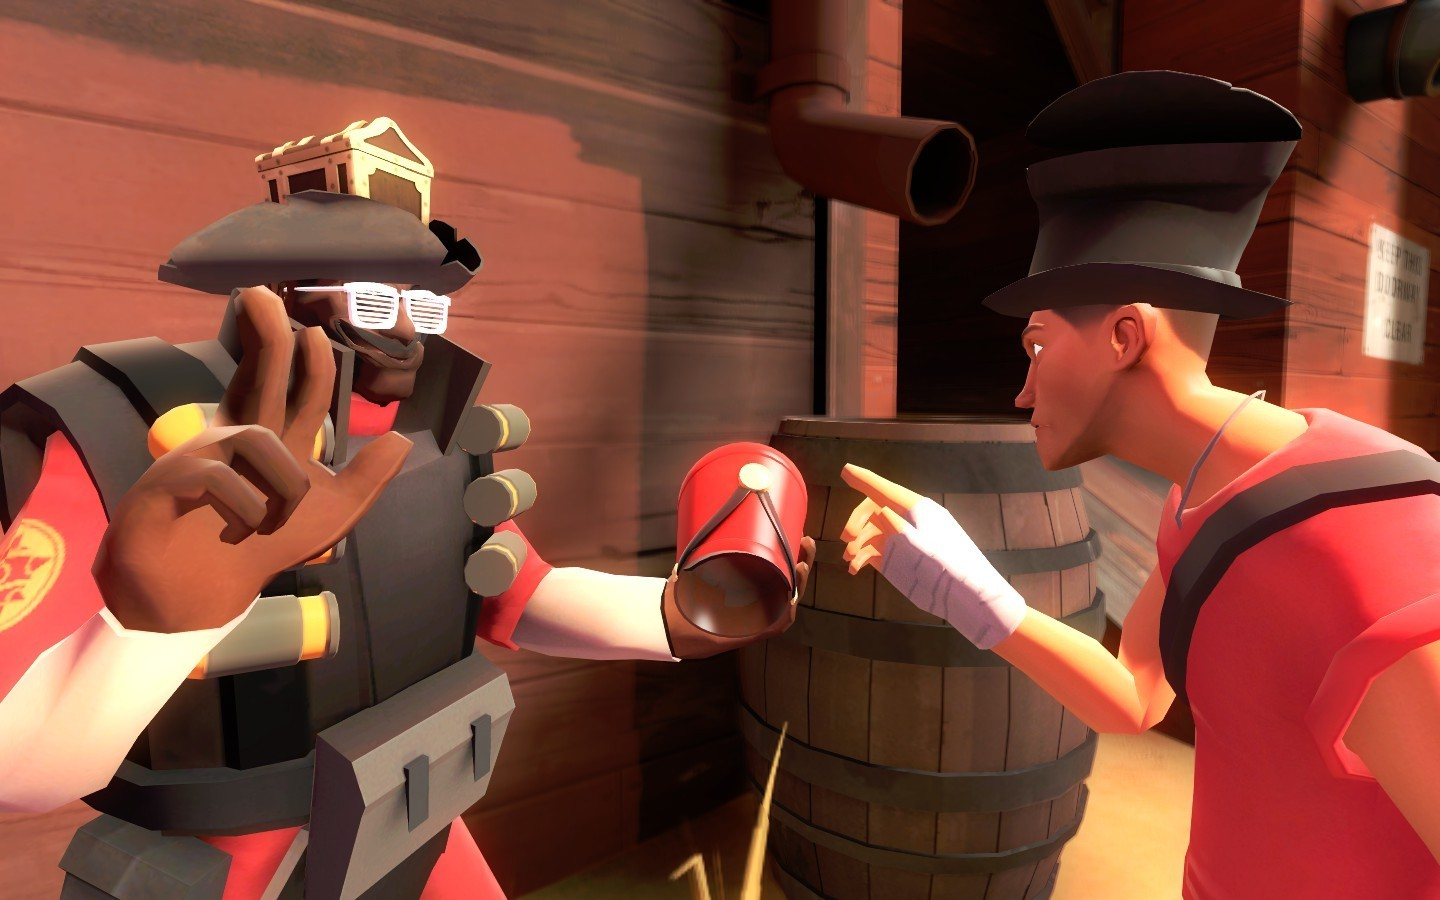 video games Scout TF2 HD Wallpaper